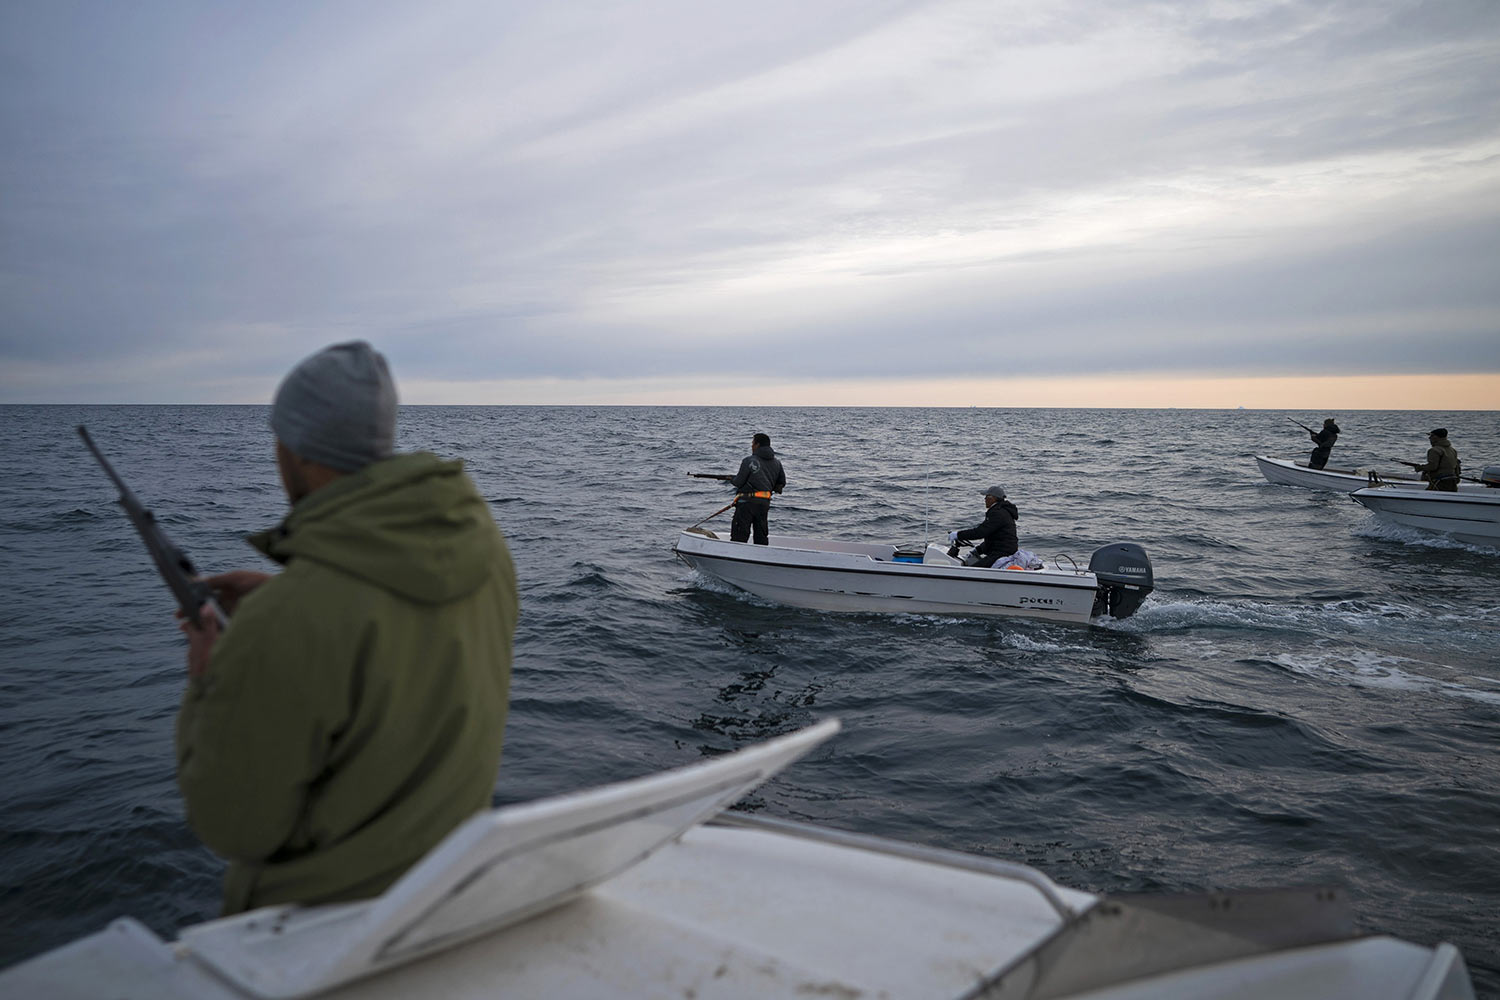 Mugu Utuaq, left, reloads his rifle as he rides with other boats hunting whales on Aug. 16, 2019, near Kulusuk, Greenland. Summer in 2019 is hitting the island hard with record-shattering heat and extreme melt. Scientists estimate that by the end of the summer, about 440 billion tons of ice, maybe more, will have melted or calved off Greenland's giant ice sheet. (AP Photo/Felipe Dana)